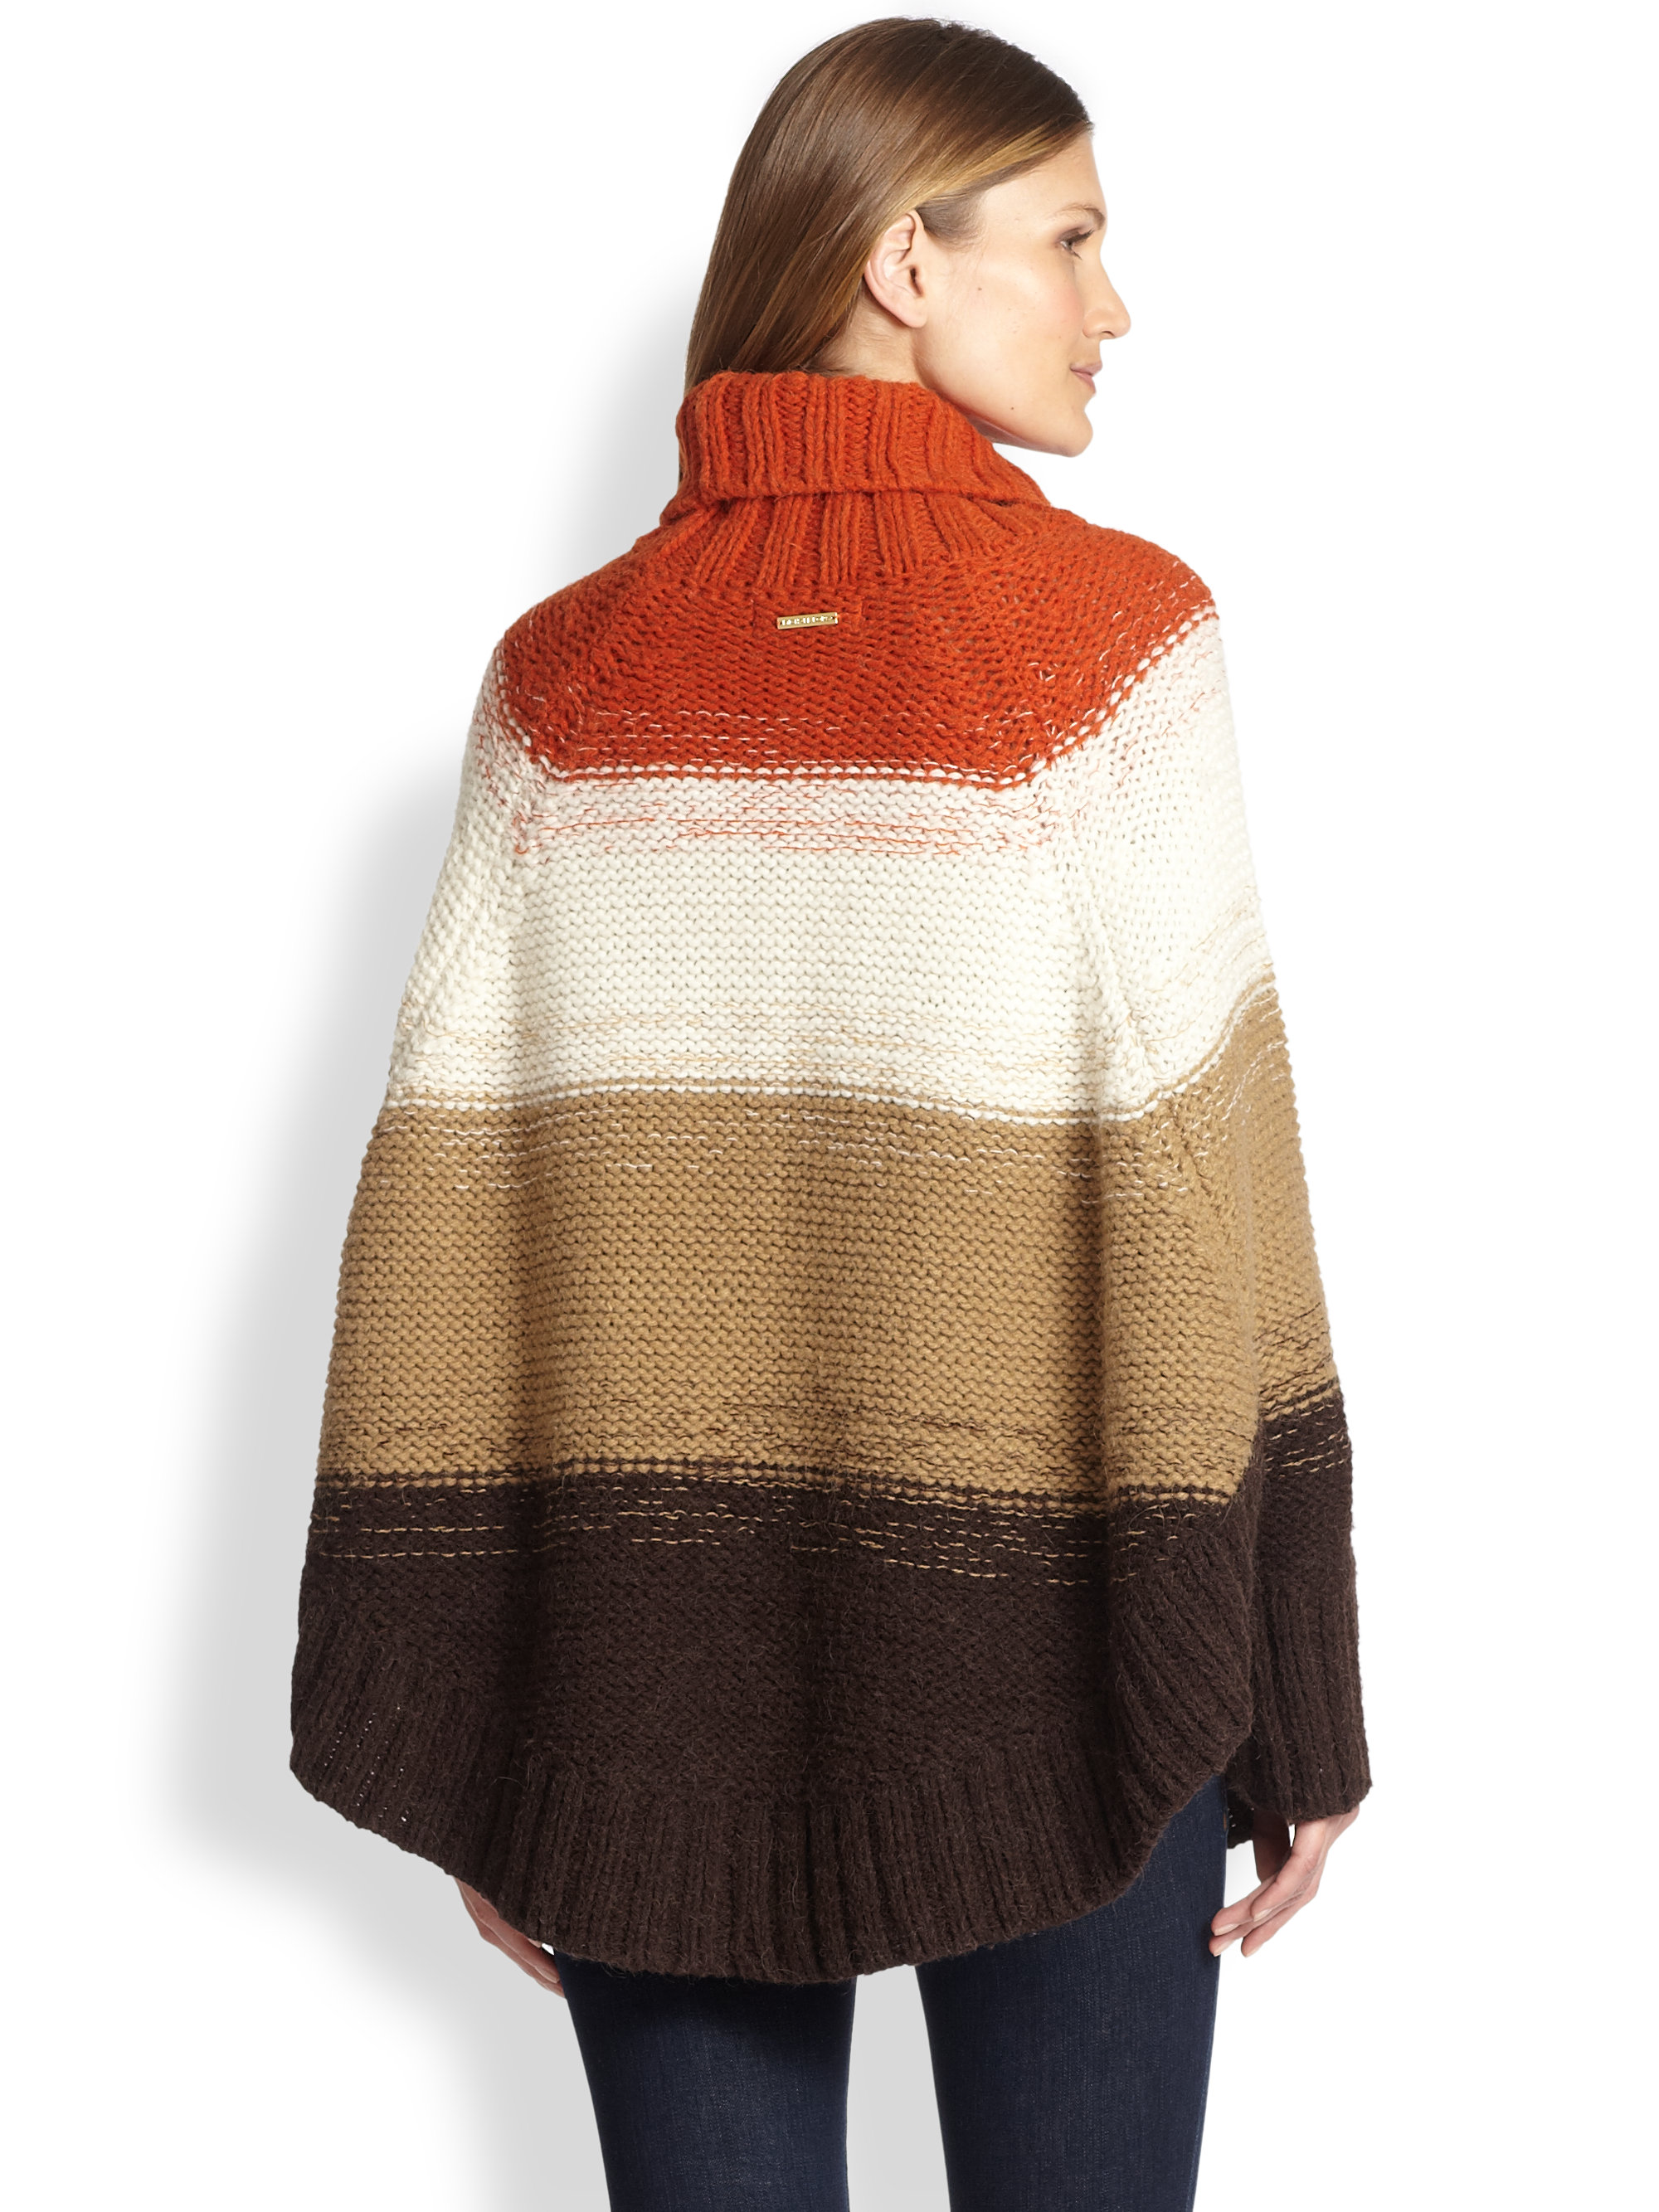 Sweater Poncho With Sleeves